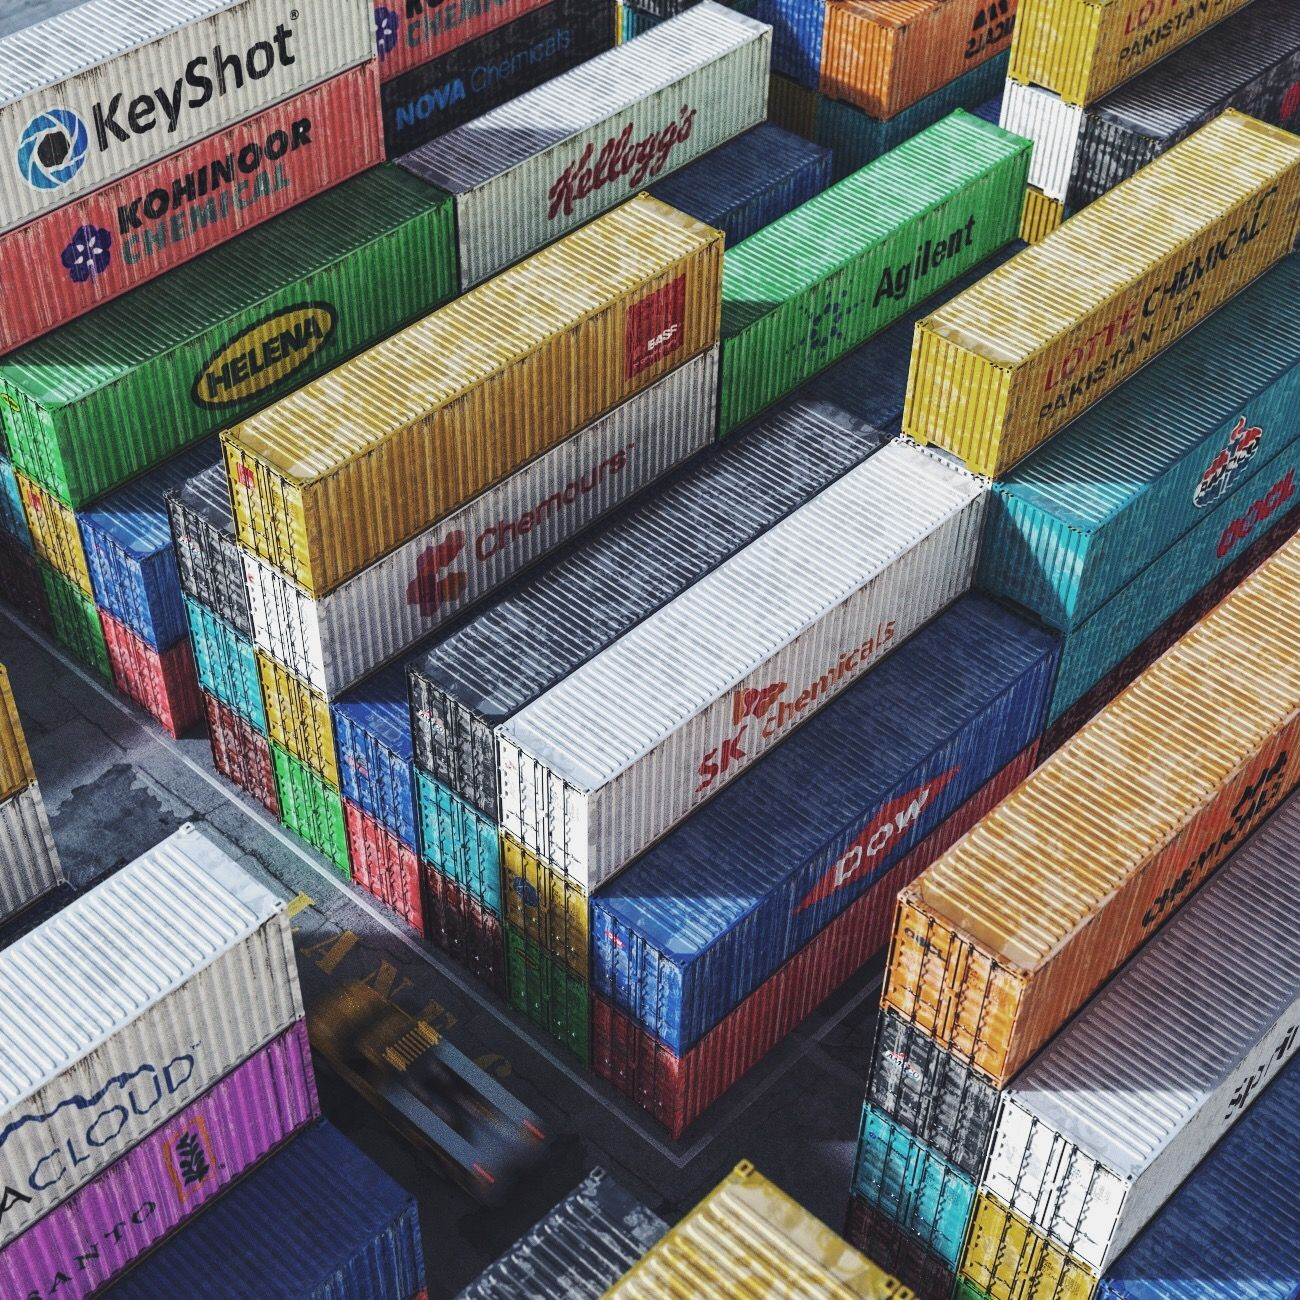 Truck container yard, rendered in KeyShot by Hossein Alfideh.